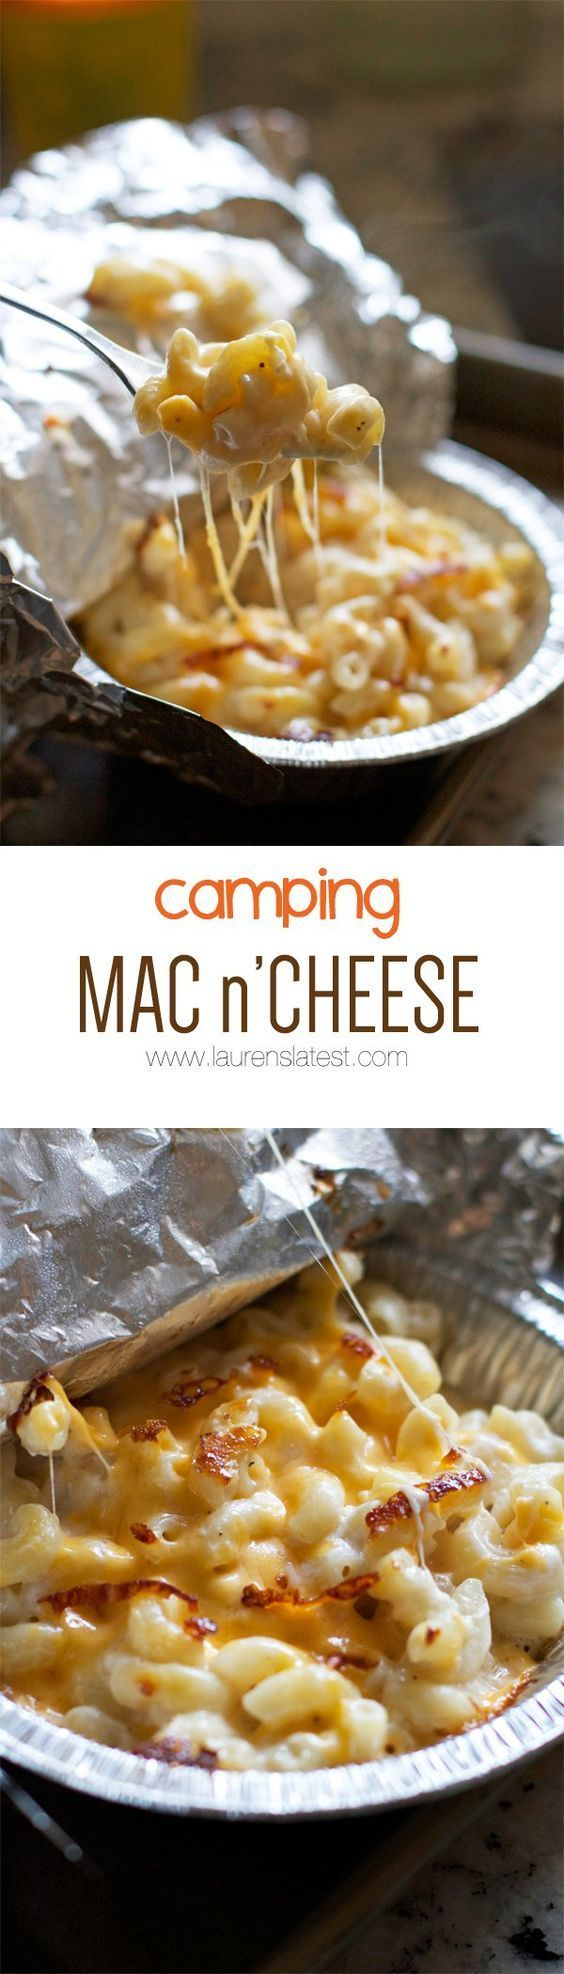 Camping Mac n'Cheese prep at home, divide into individual aluminum foil pans and reheat atop a grate on the campfire = warm gooey comforting goodness